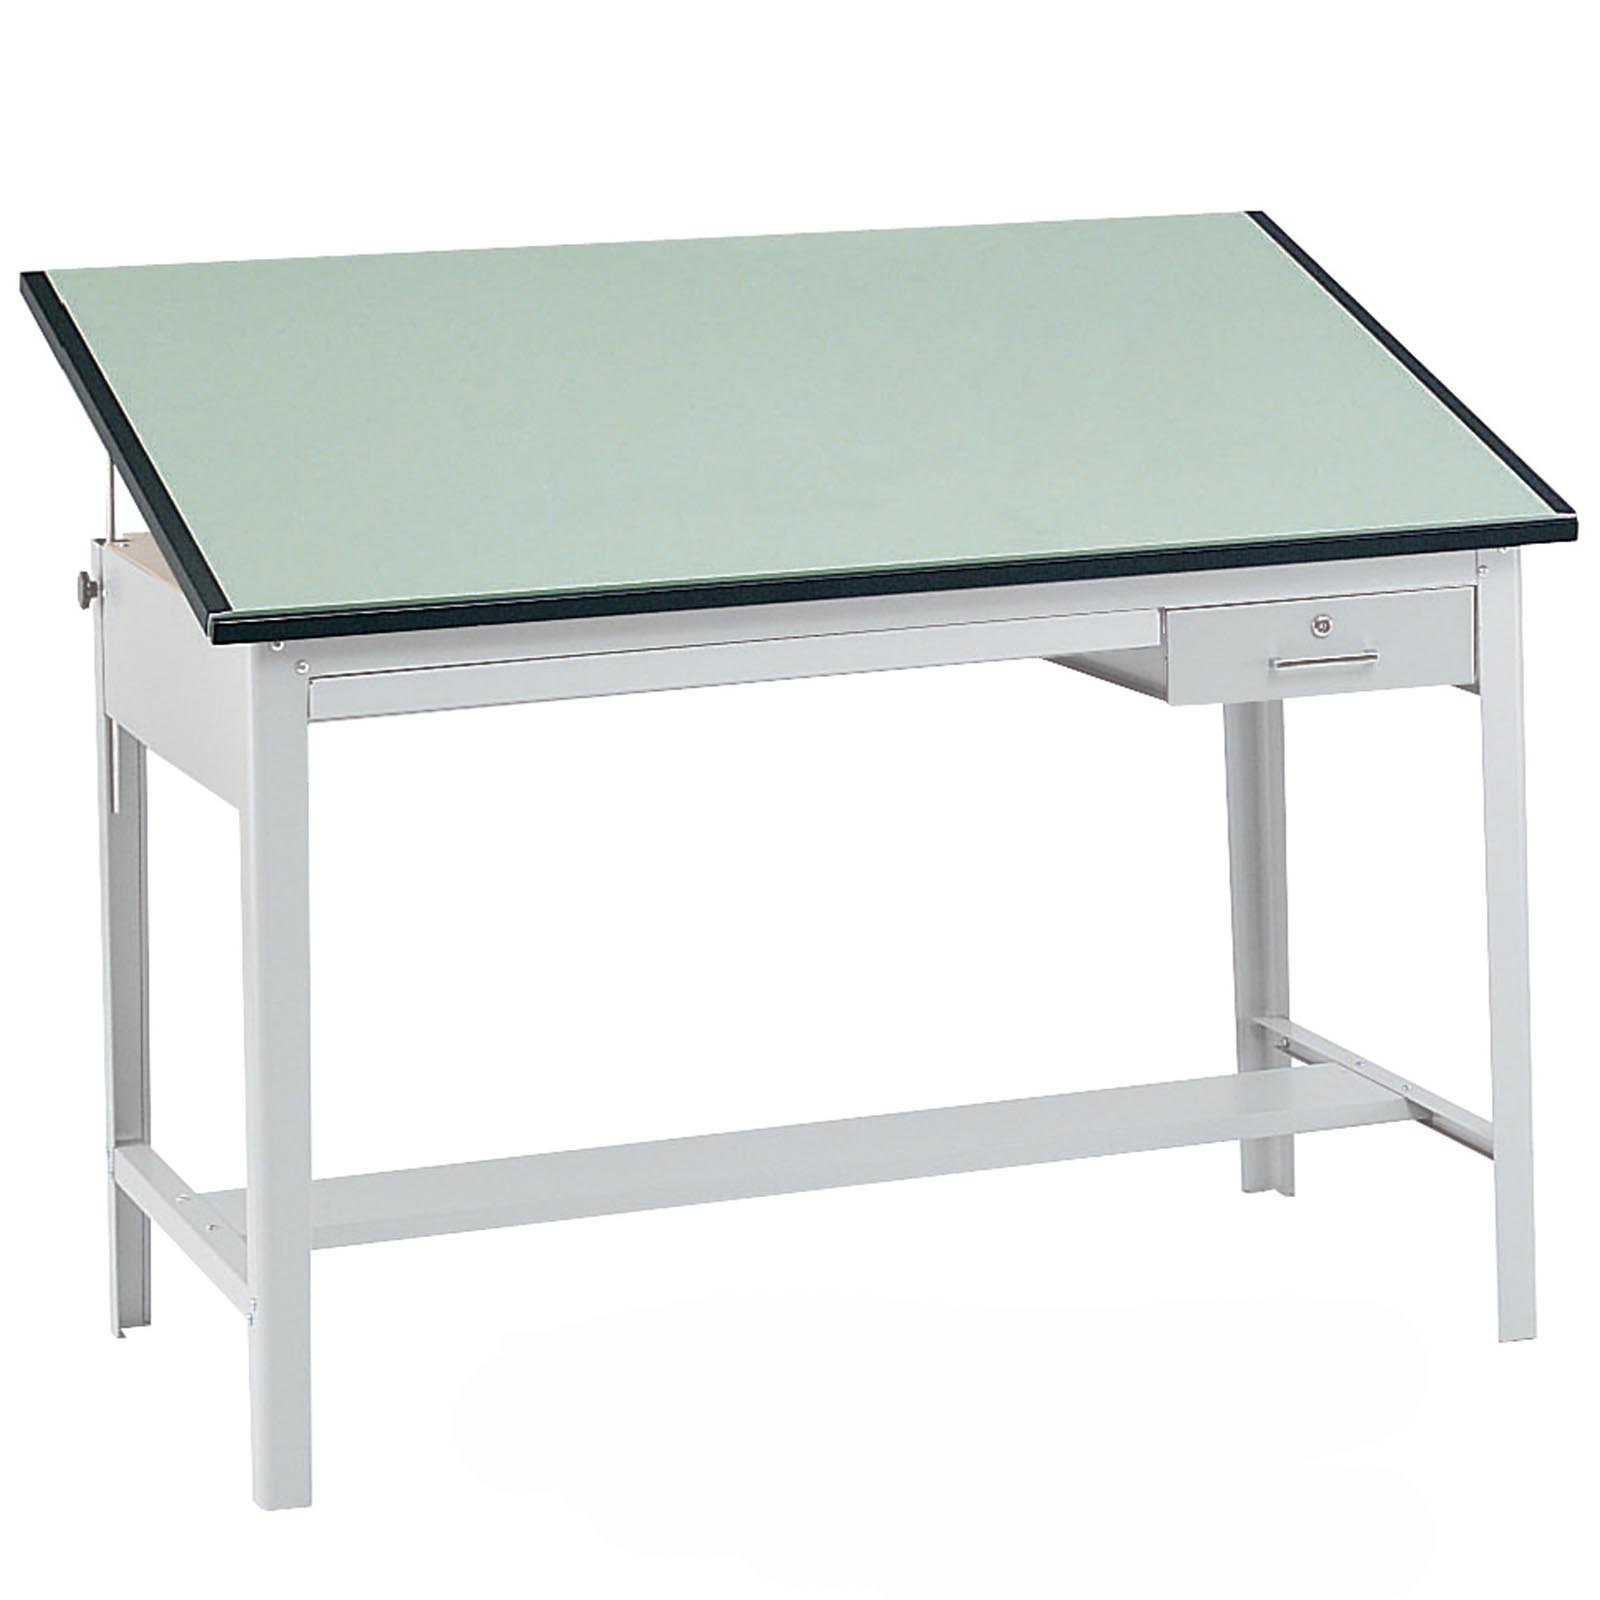 Safco Precision Drafting Table   Walmart.com